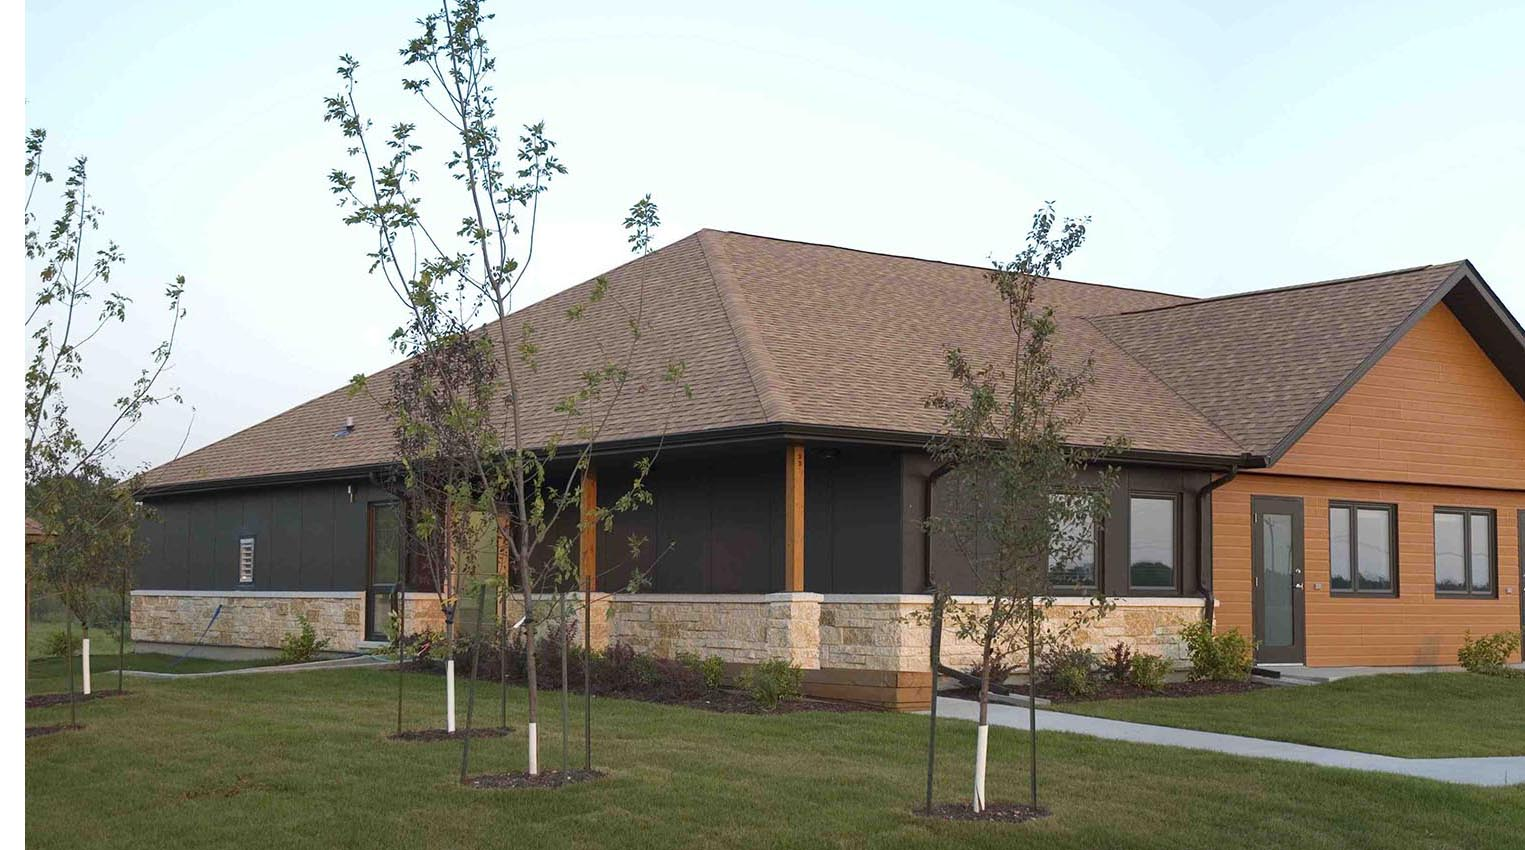 East Borderland Housing, exterior photo of building